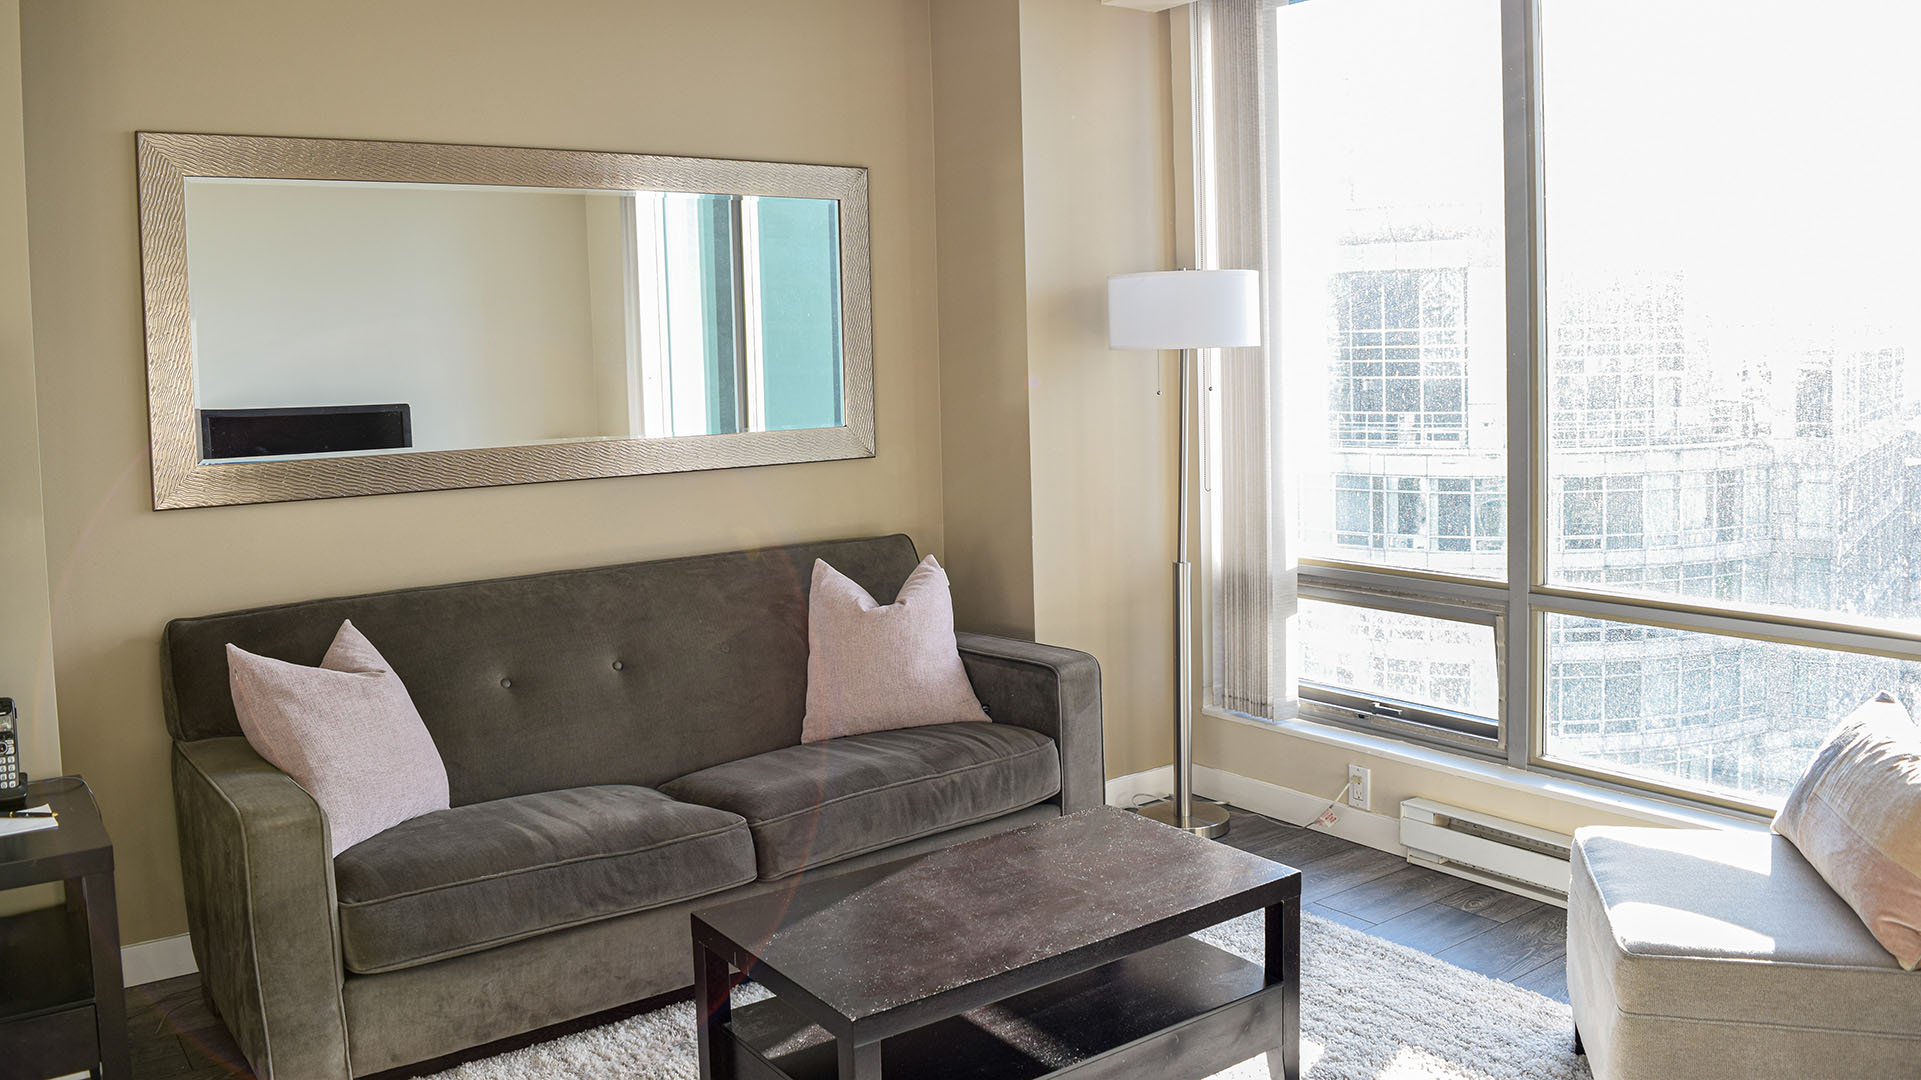 Photo of fully furnished apartment #2607 at The Residences on Georgia, 1288 West Georgia Street, Vancouver, BC